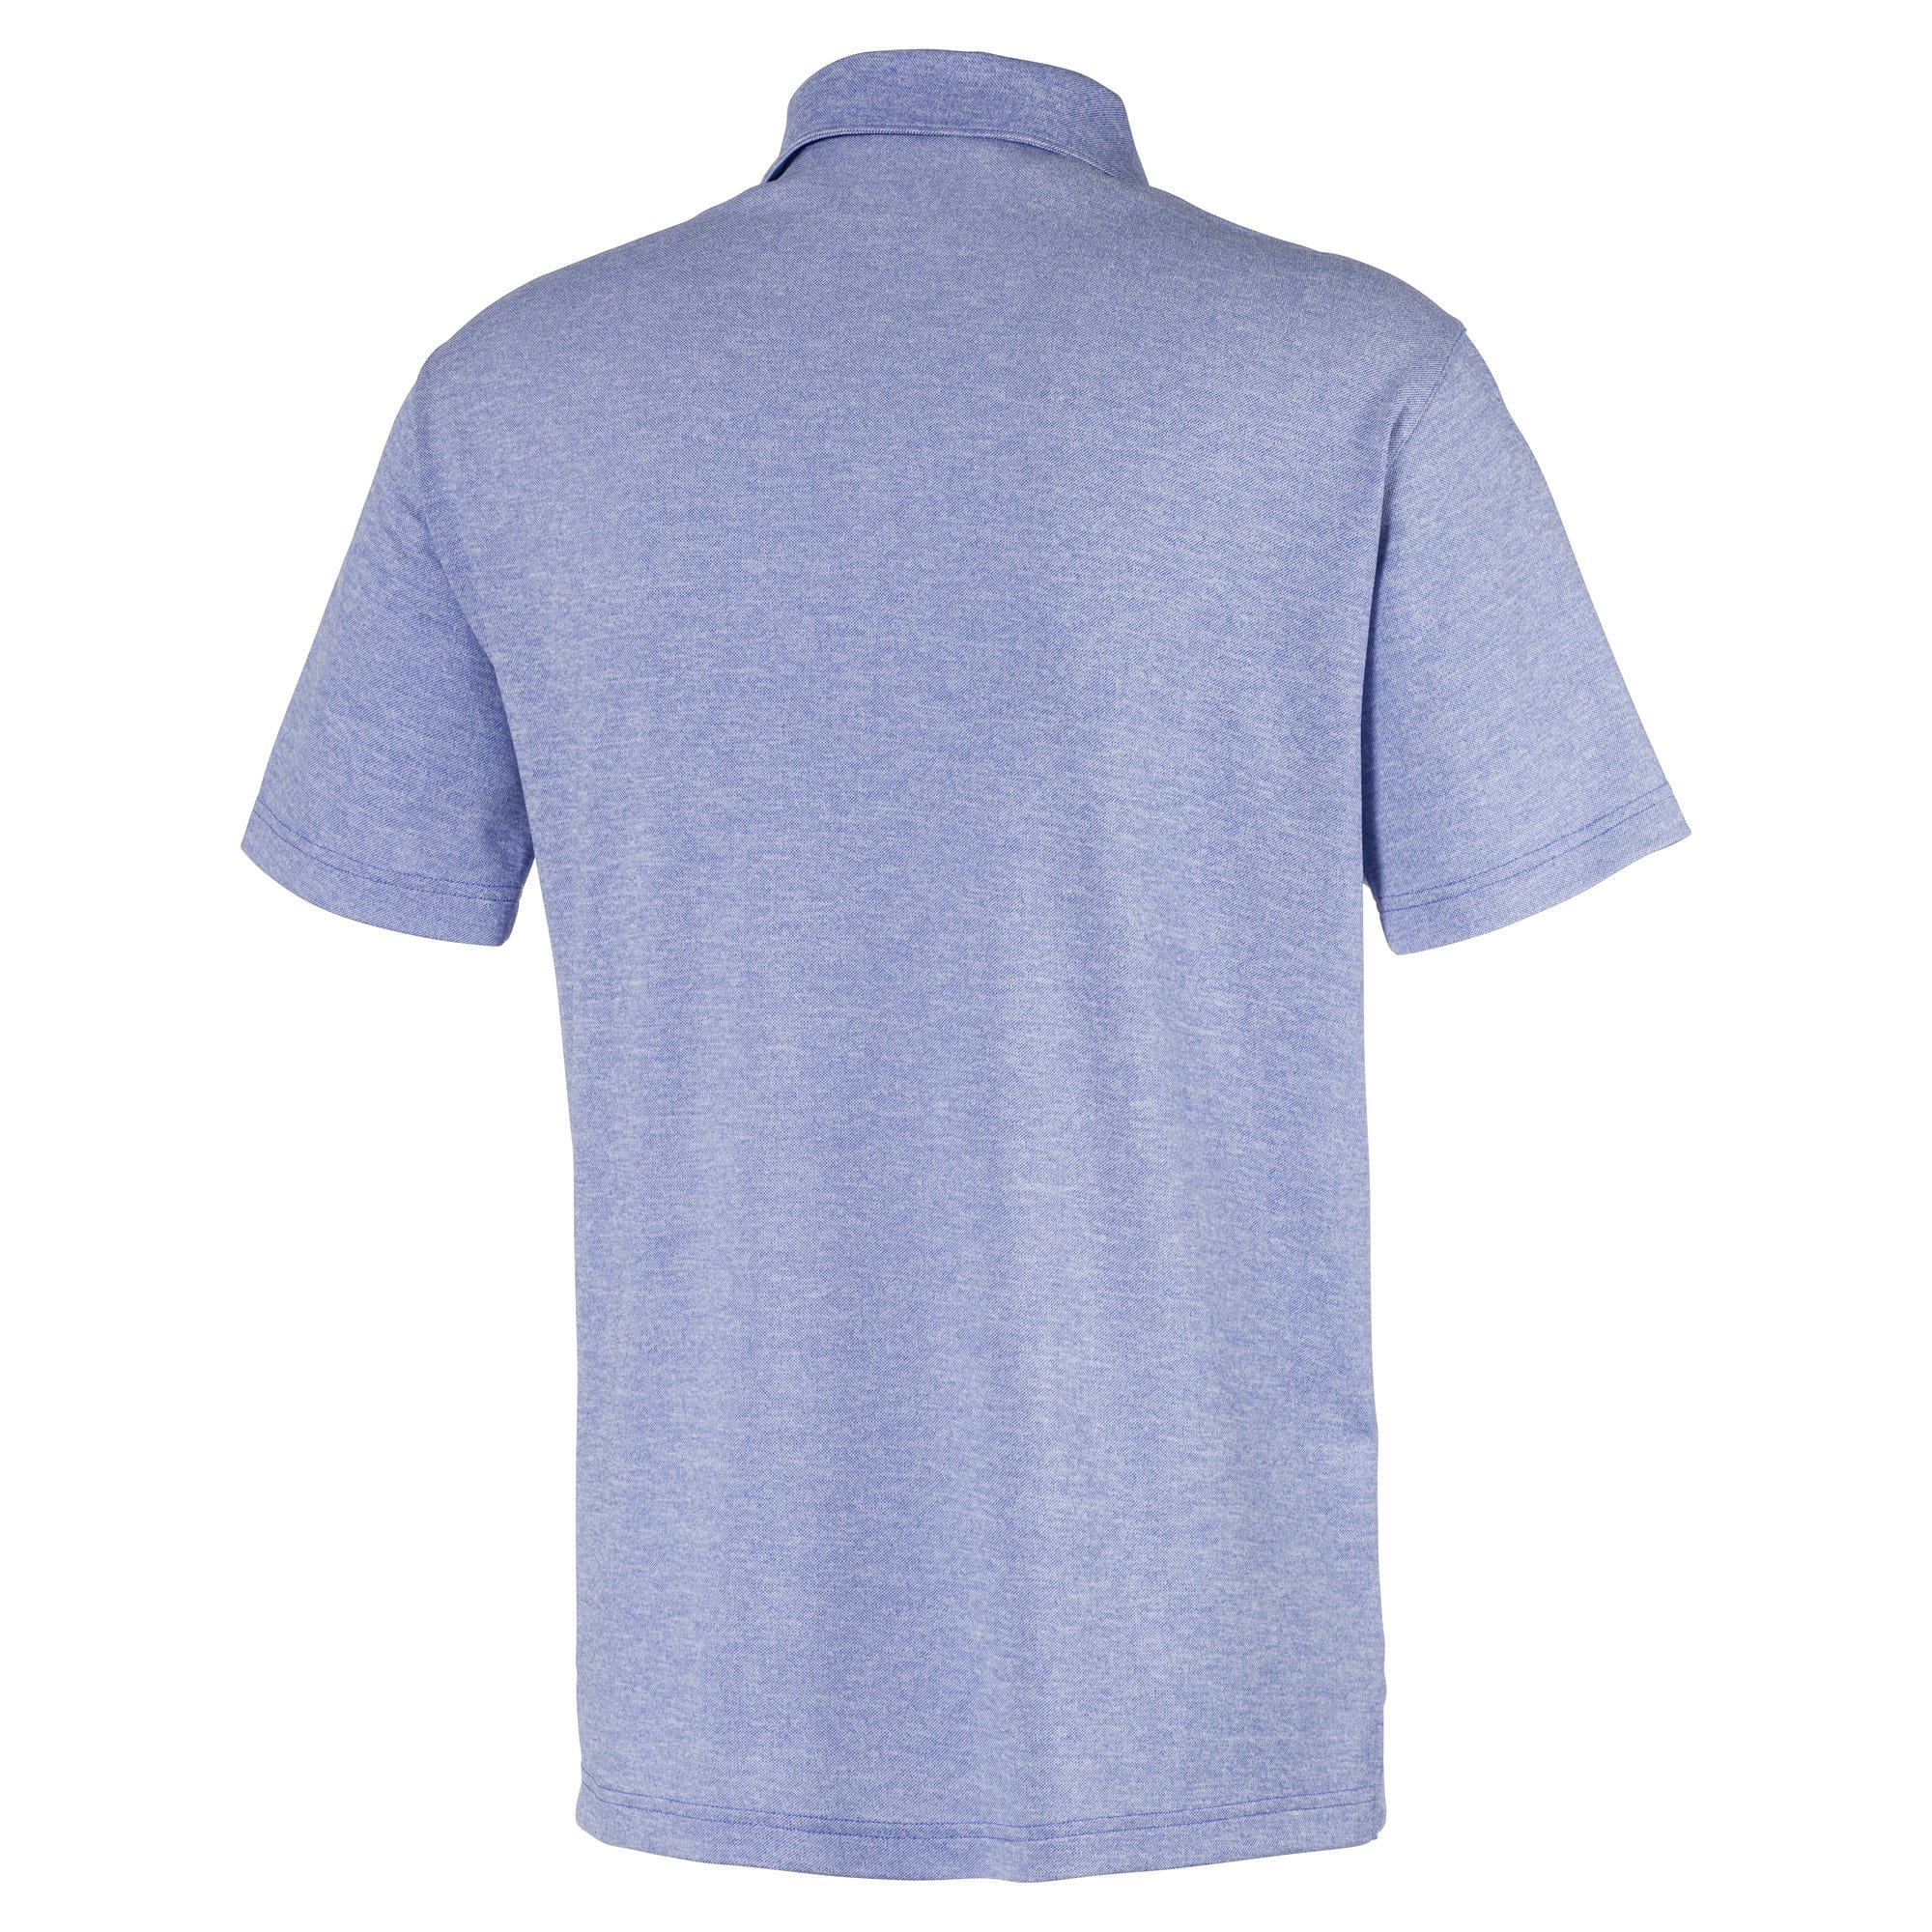 Thumbnail 5 of Grill to Green Men's Golf Polo, Dazzling Blue Heather, medium